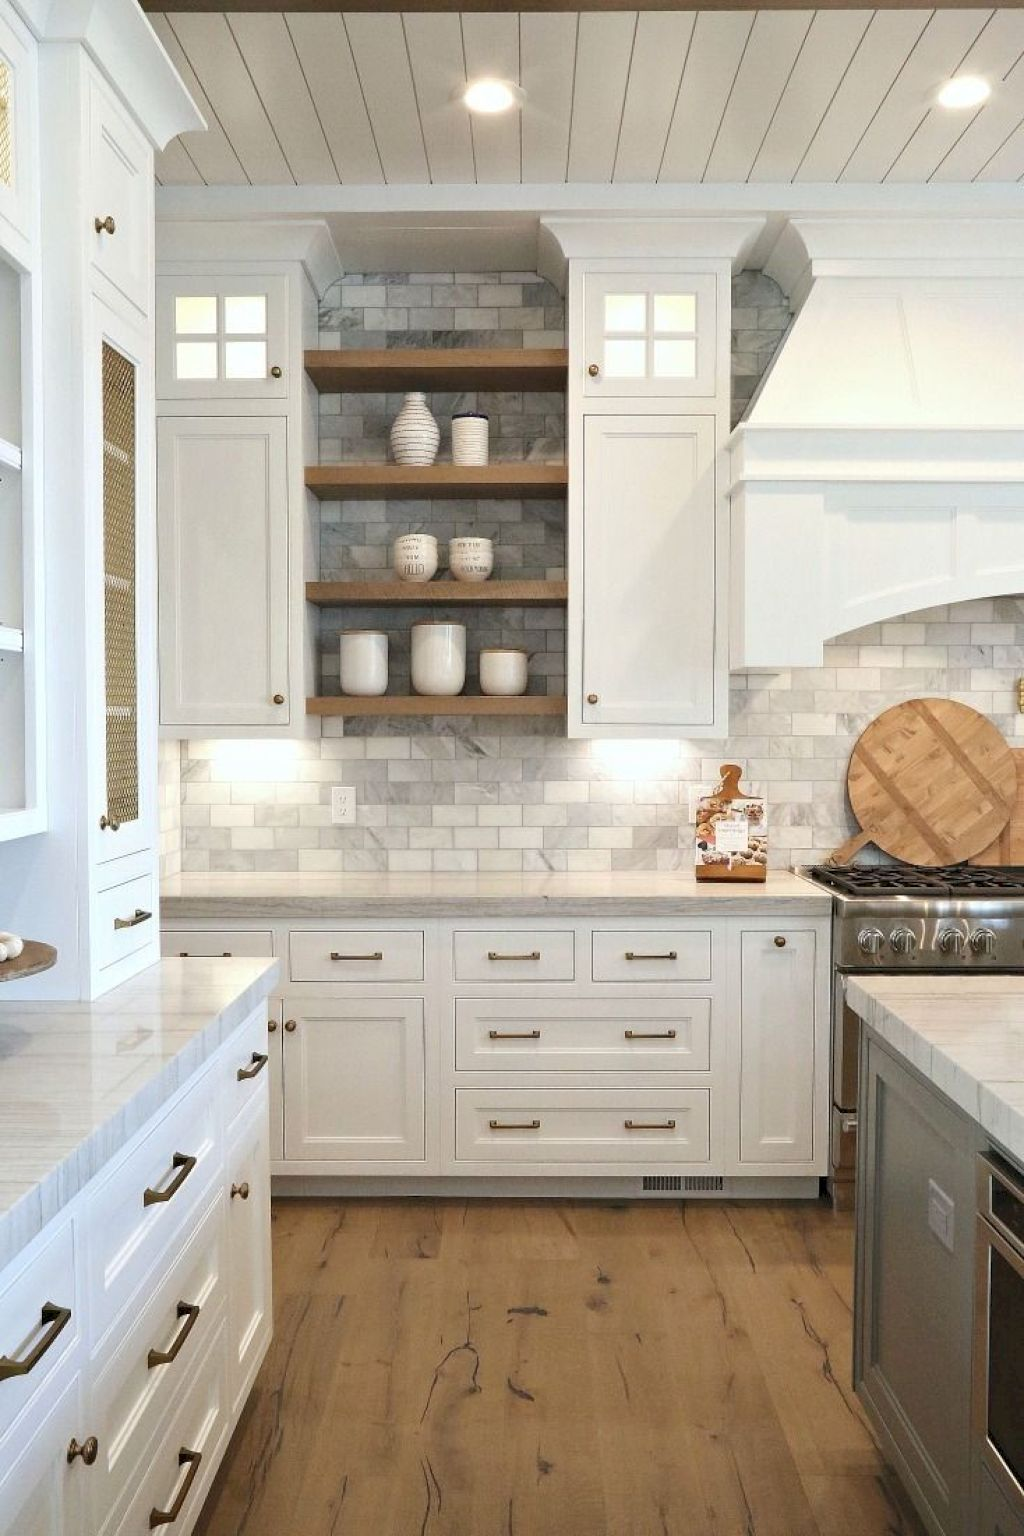 Pin by louanna morgan on diy projects in pinterest kitchen